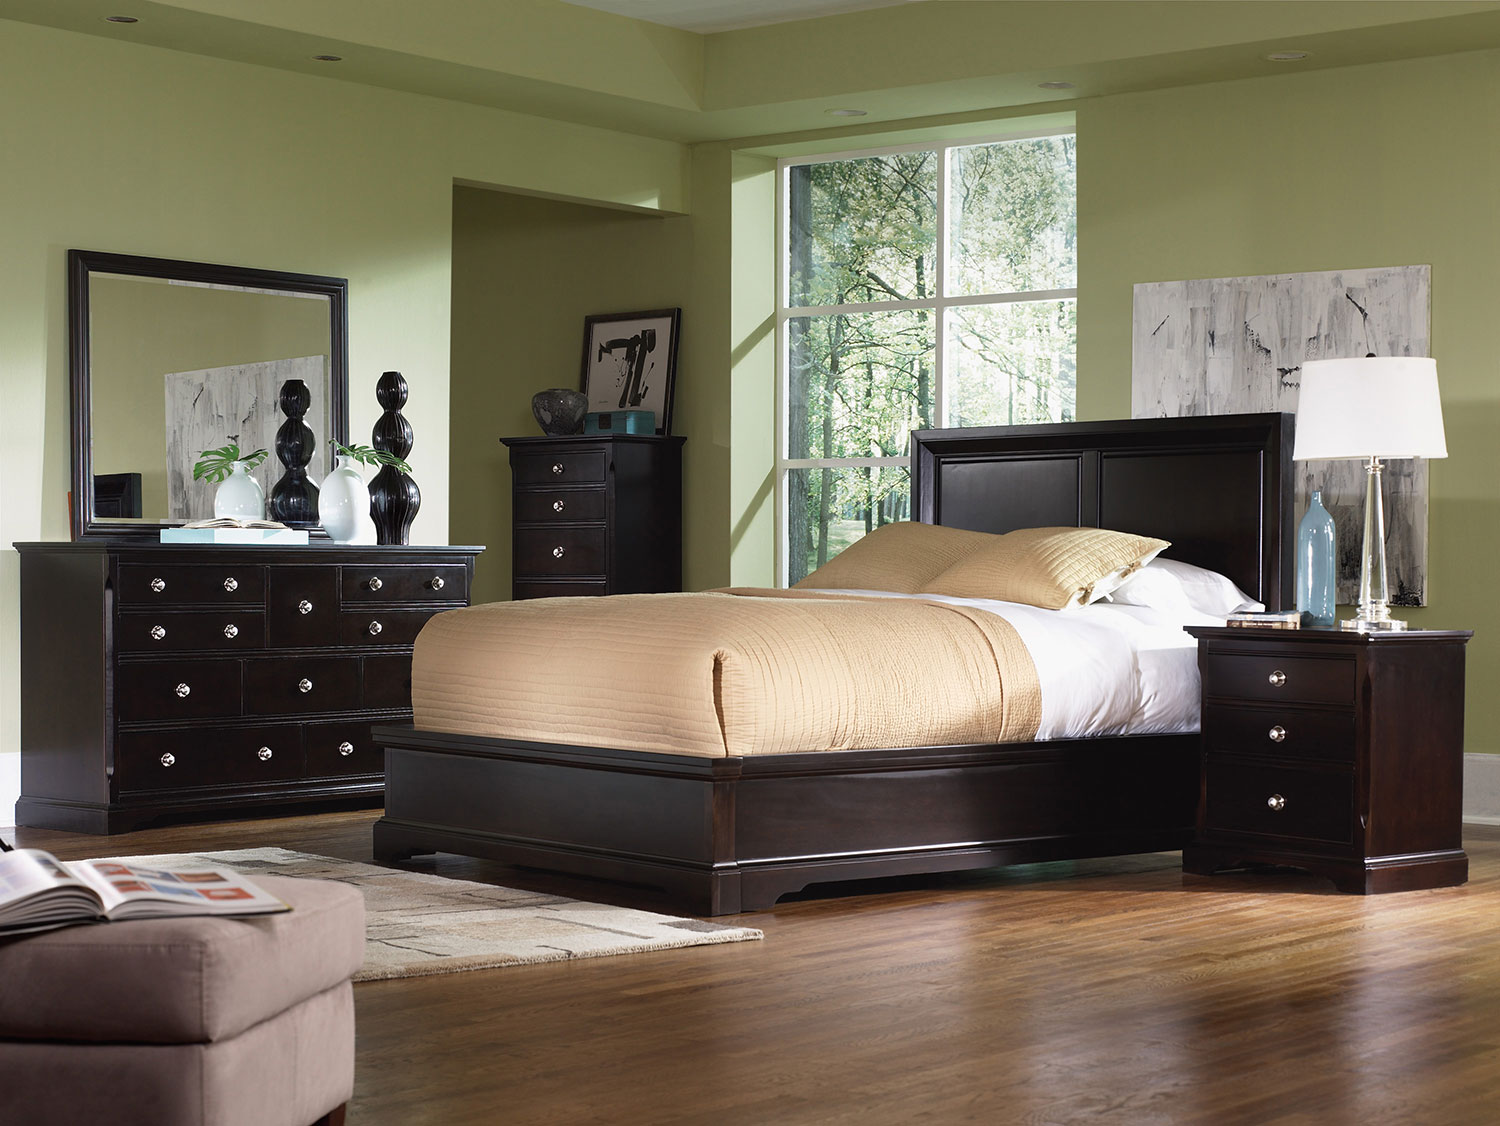 Georgetown 4-Piece King Bedroom Set - Dark Merlot